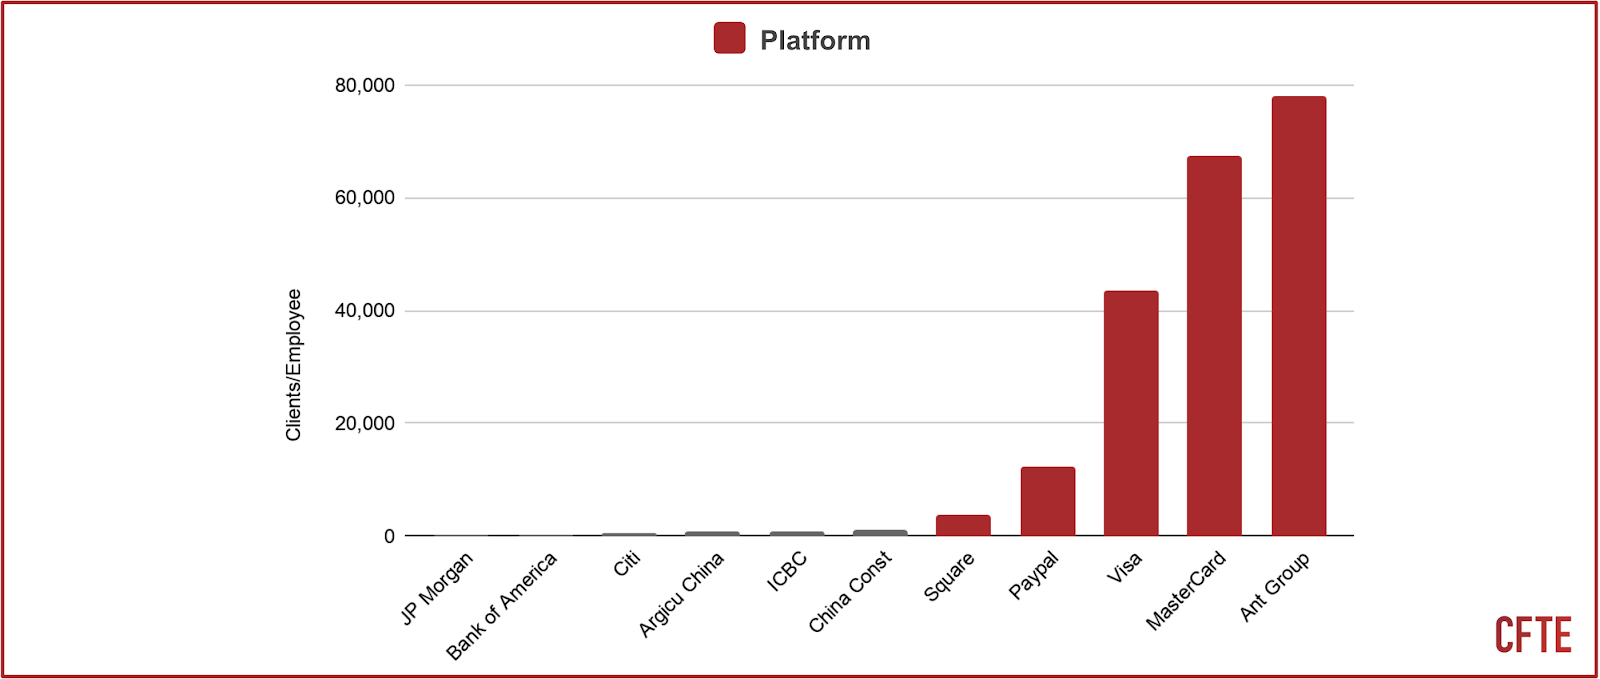 a graph that shows the number of customers per employee: Platform vs non-platform.